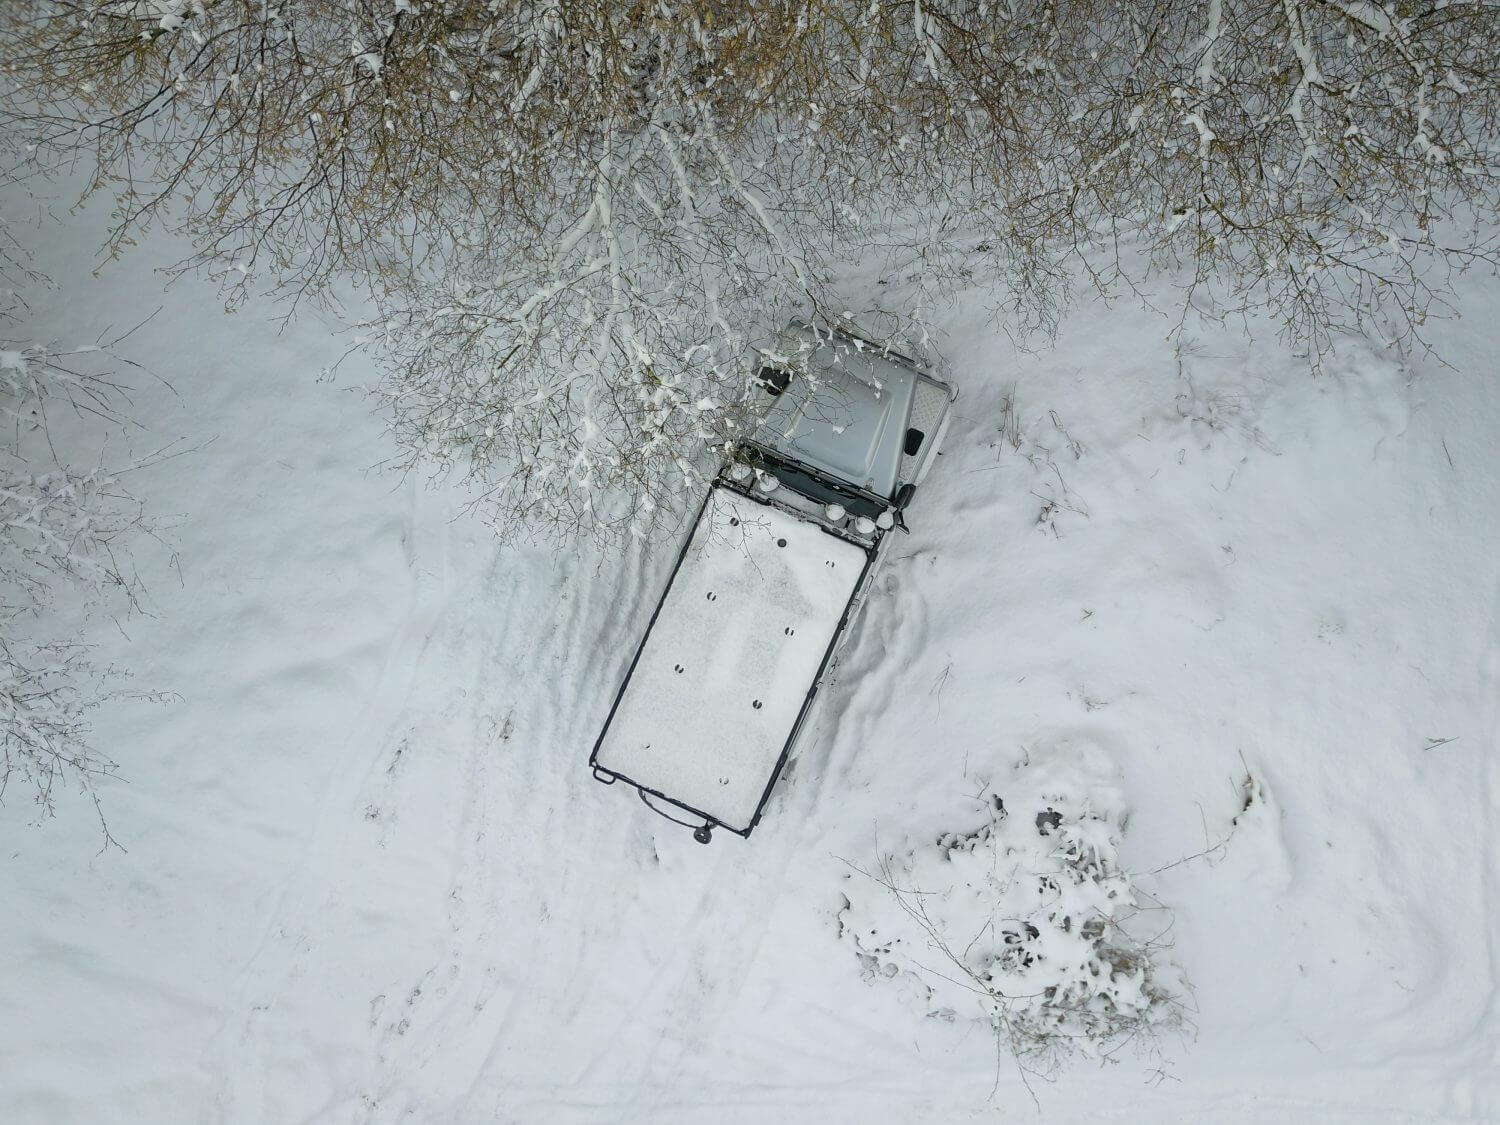 Car crashes in snow and ice – ranked by speed